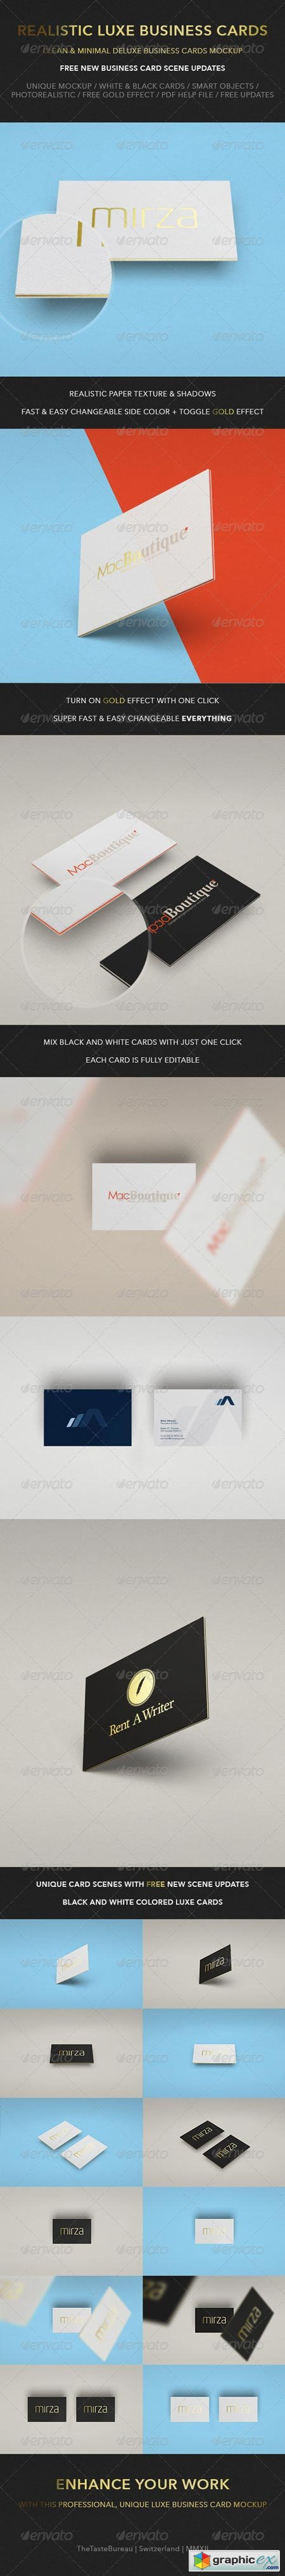 Realistic luxe business card mock up 6507623 free download vector realistic luxe business card mock up 6507623 reheart Gallery